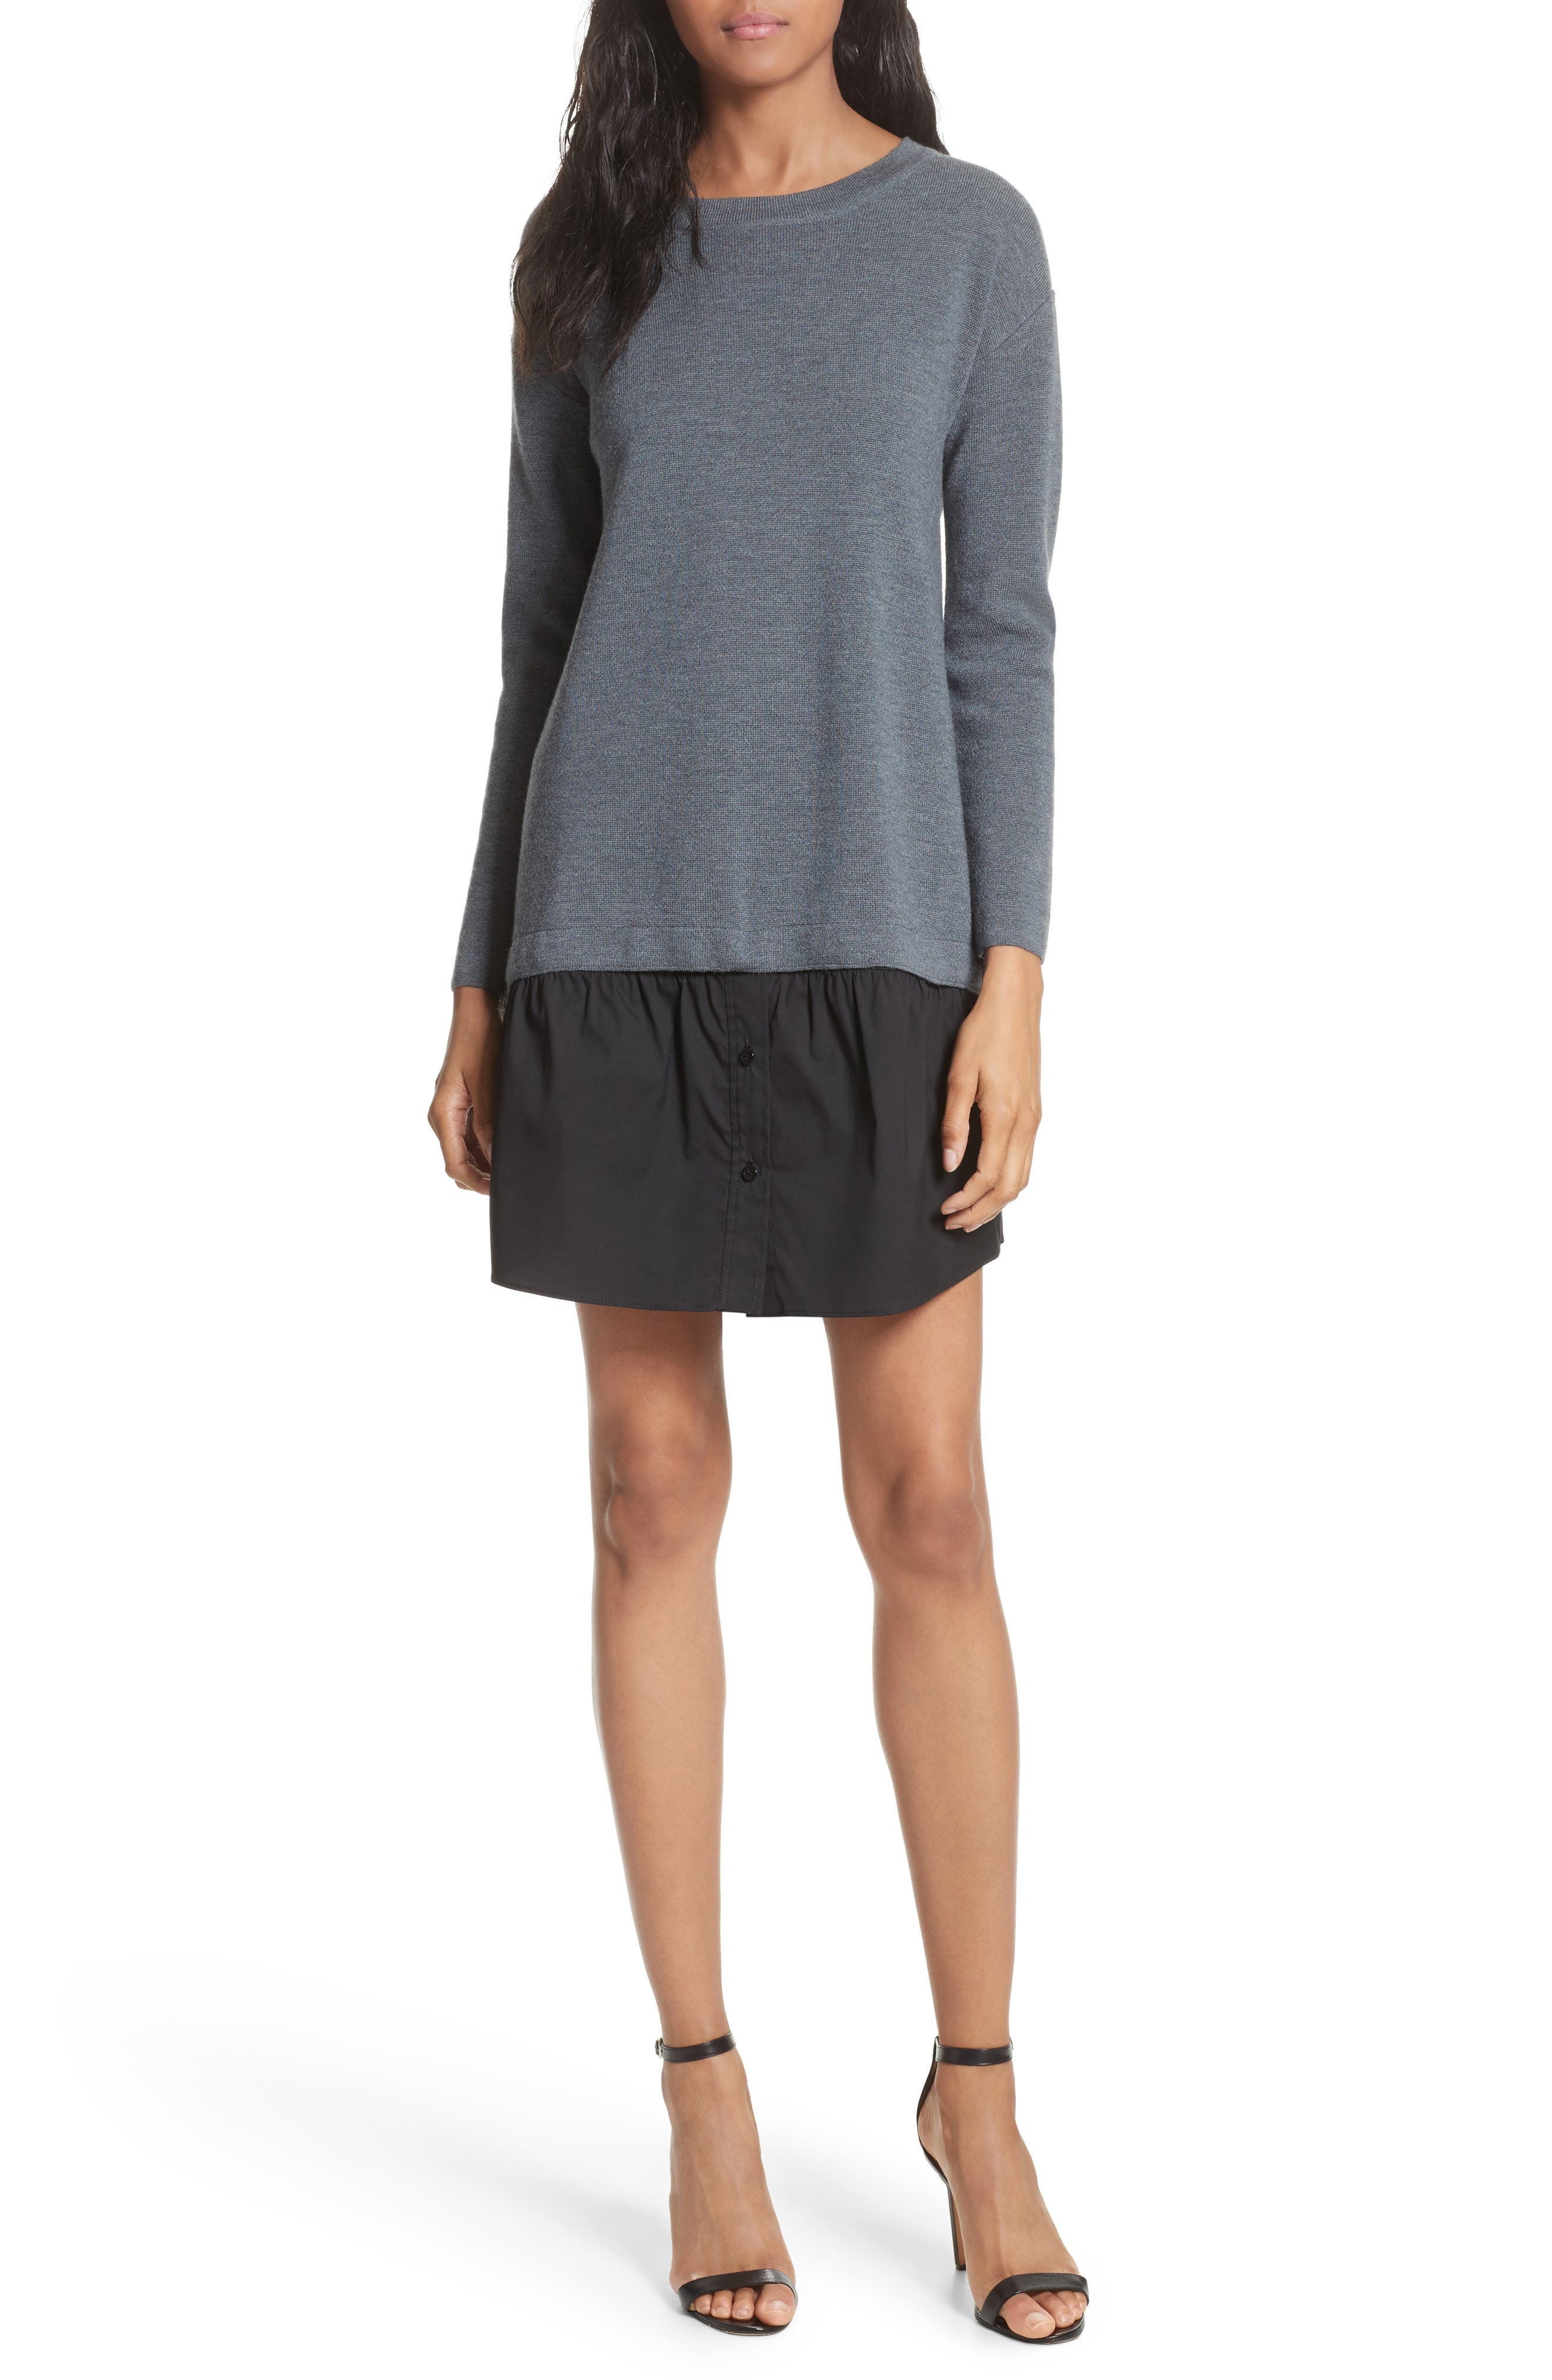 2-in-1 Sweater Dress,                             Main thumbnail 1, color,                             Heather Grey